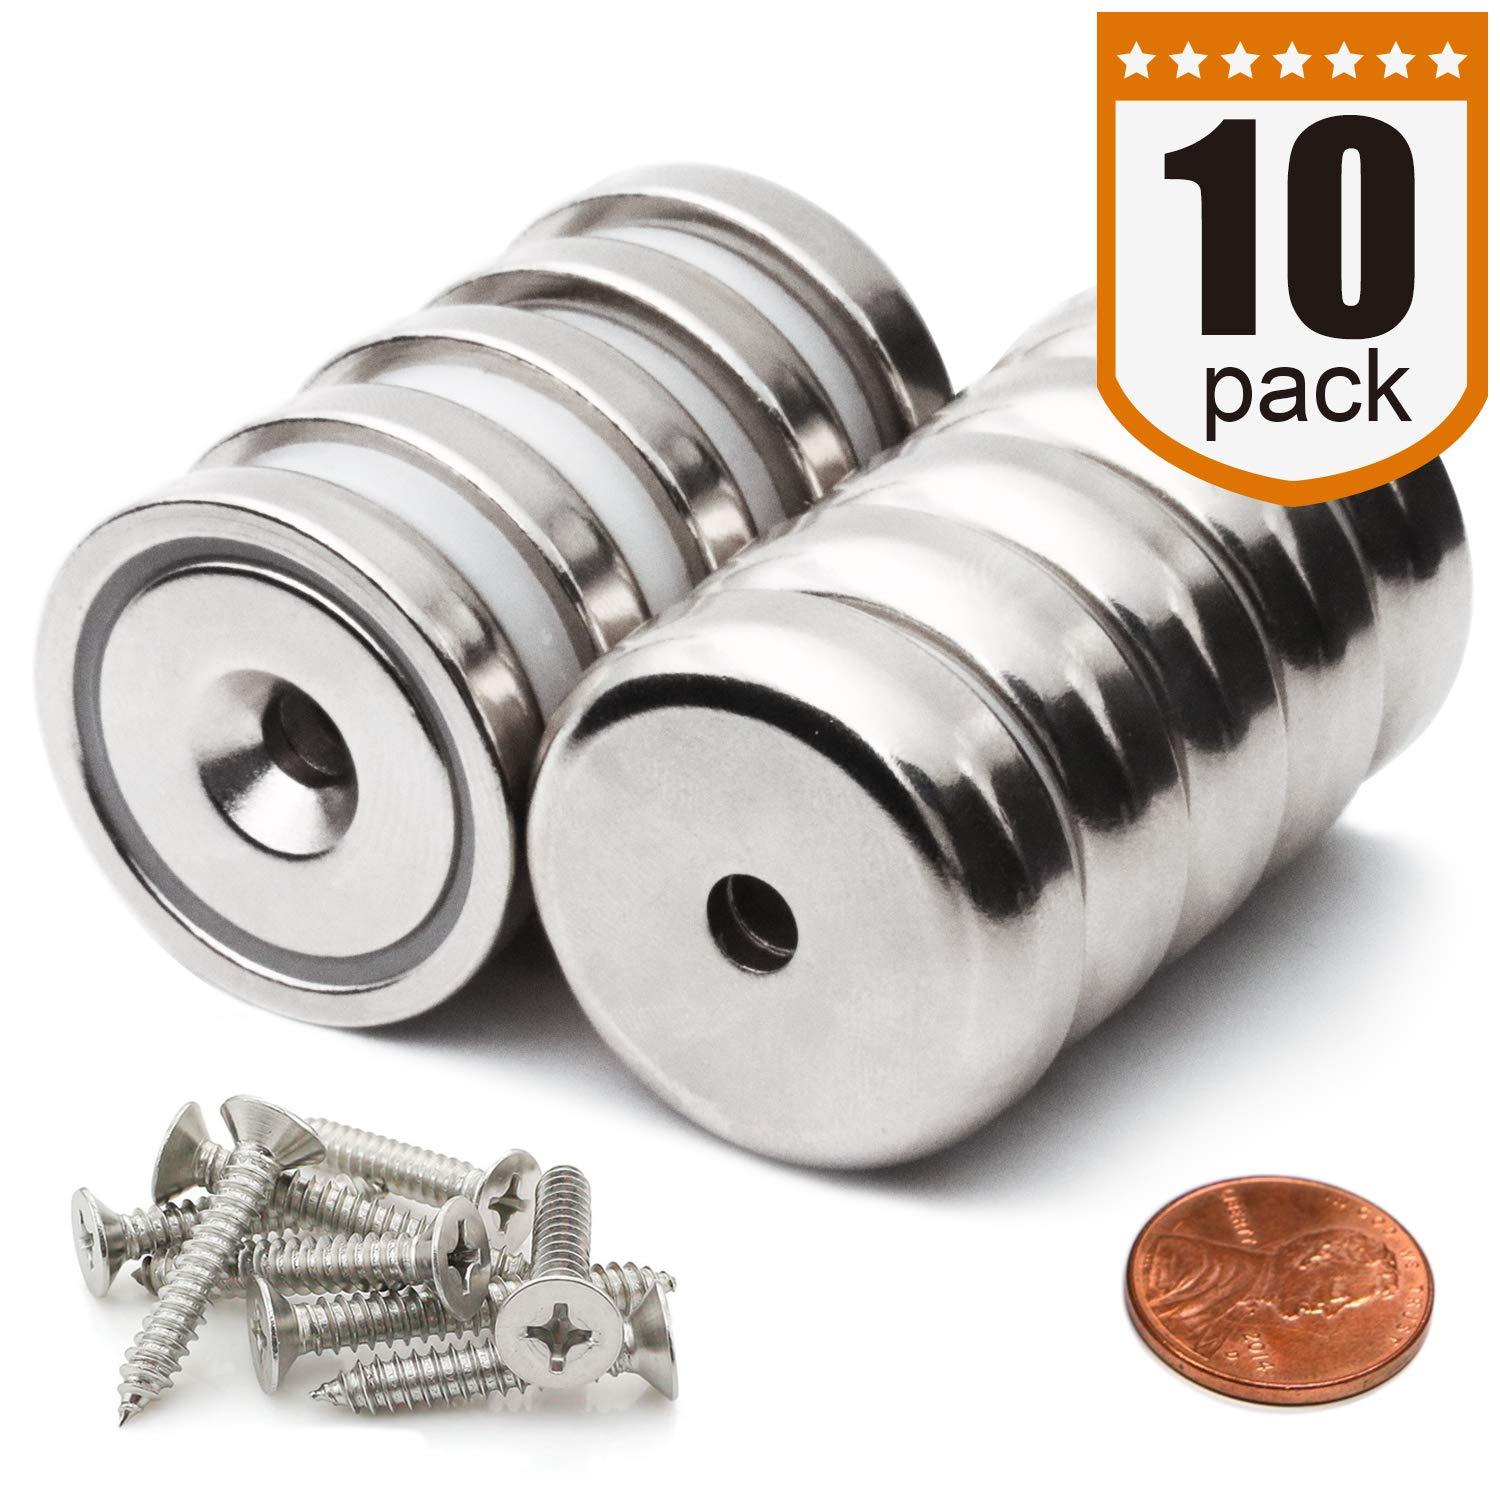 Super Power Neodymium Cup Magnets with 90 lbs Pull Capacity Each, 1.26''D x 0.3''H - Pack of 10